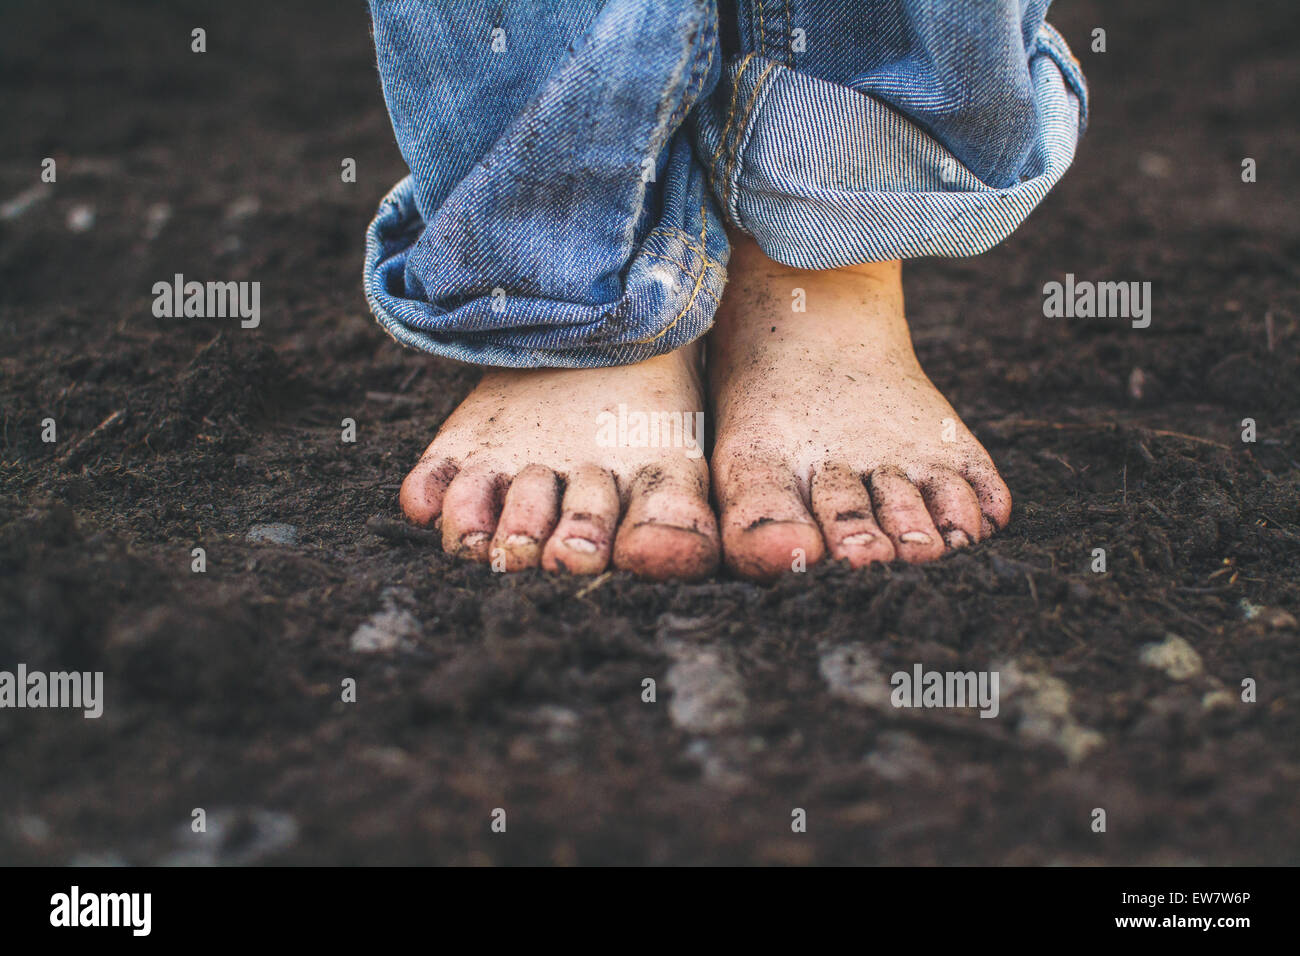 Close-up of a boy's dirty feet - Stock Image